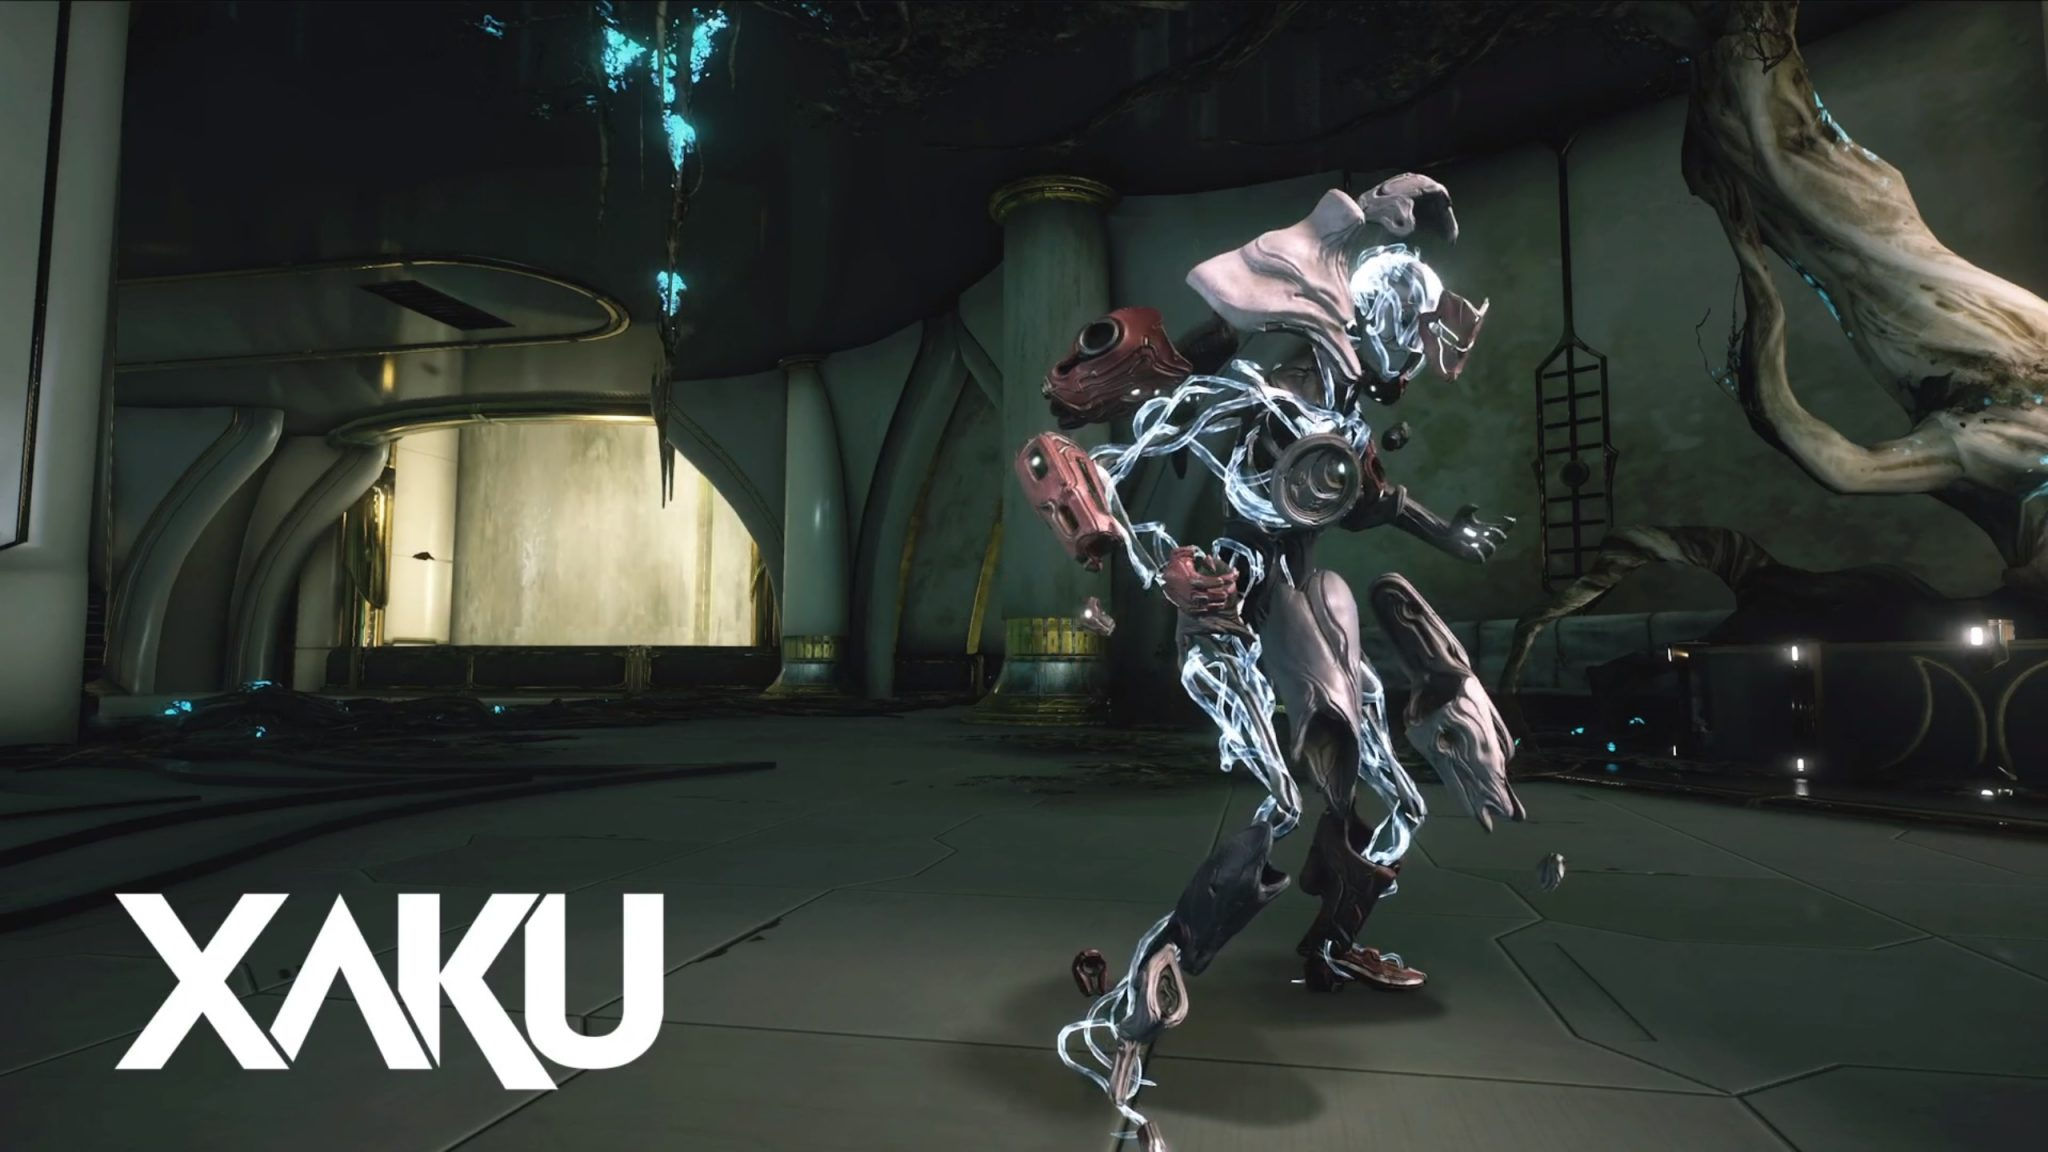 Xaku Warframe Guide Unlock Farm Release Date Abilities Nova uses electromagnetic energy to contain and control highly volatile antimatter that fuels her abilities. xaku warframe guide unlock farm